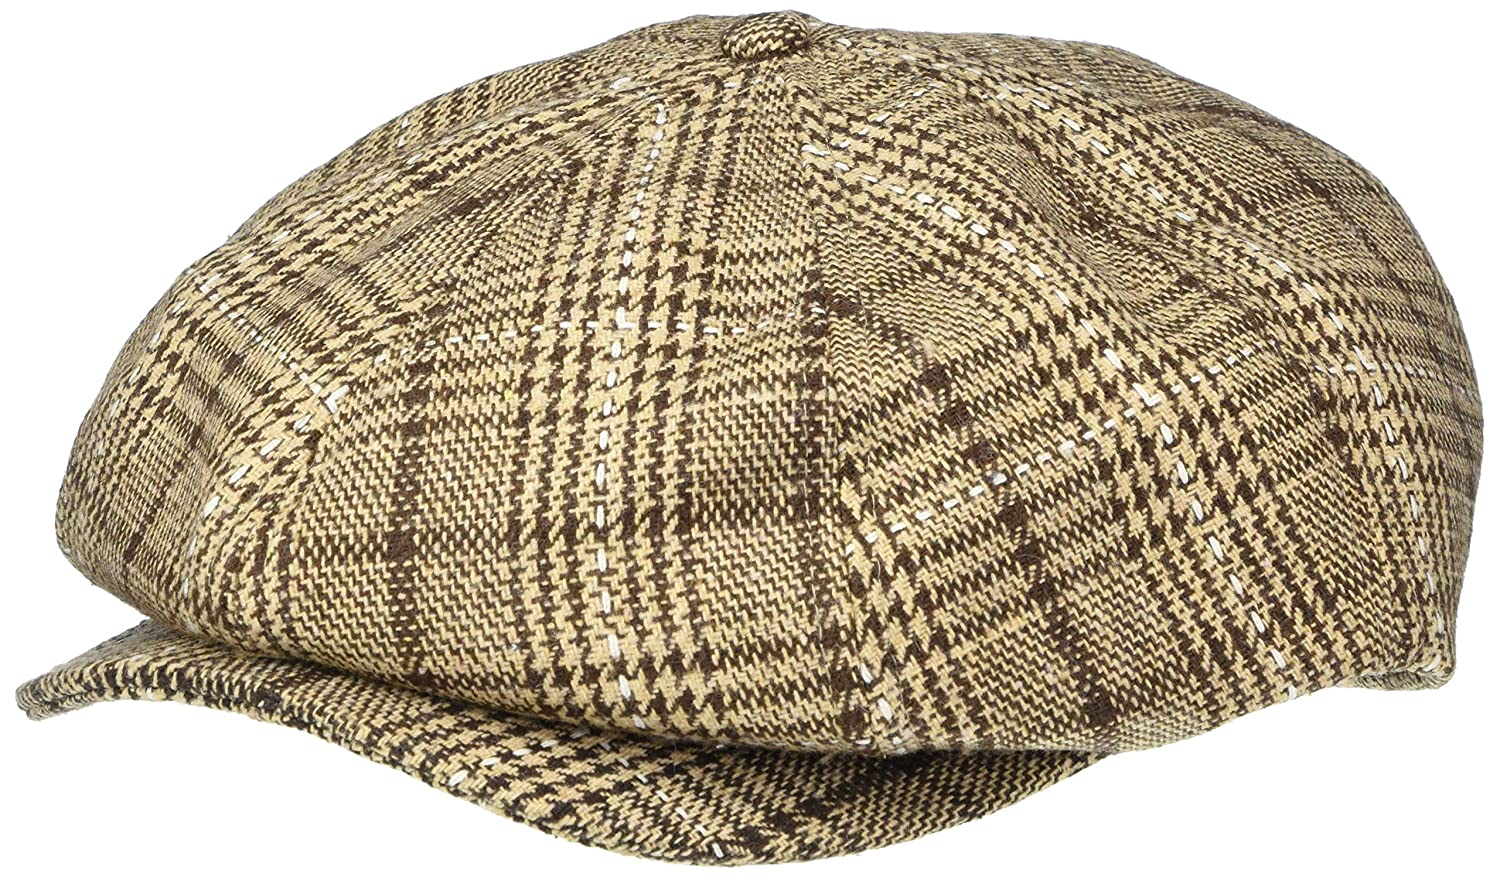 1920s Mens Hats & Caps | Gatsby, Peaky Blinders, Gangster BRIXTON Mens Brood Newsboy Snap Hat $37.11 AT vintagedancer.com